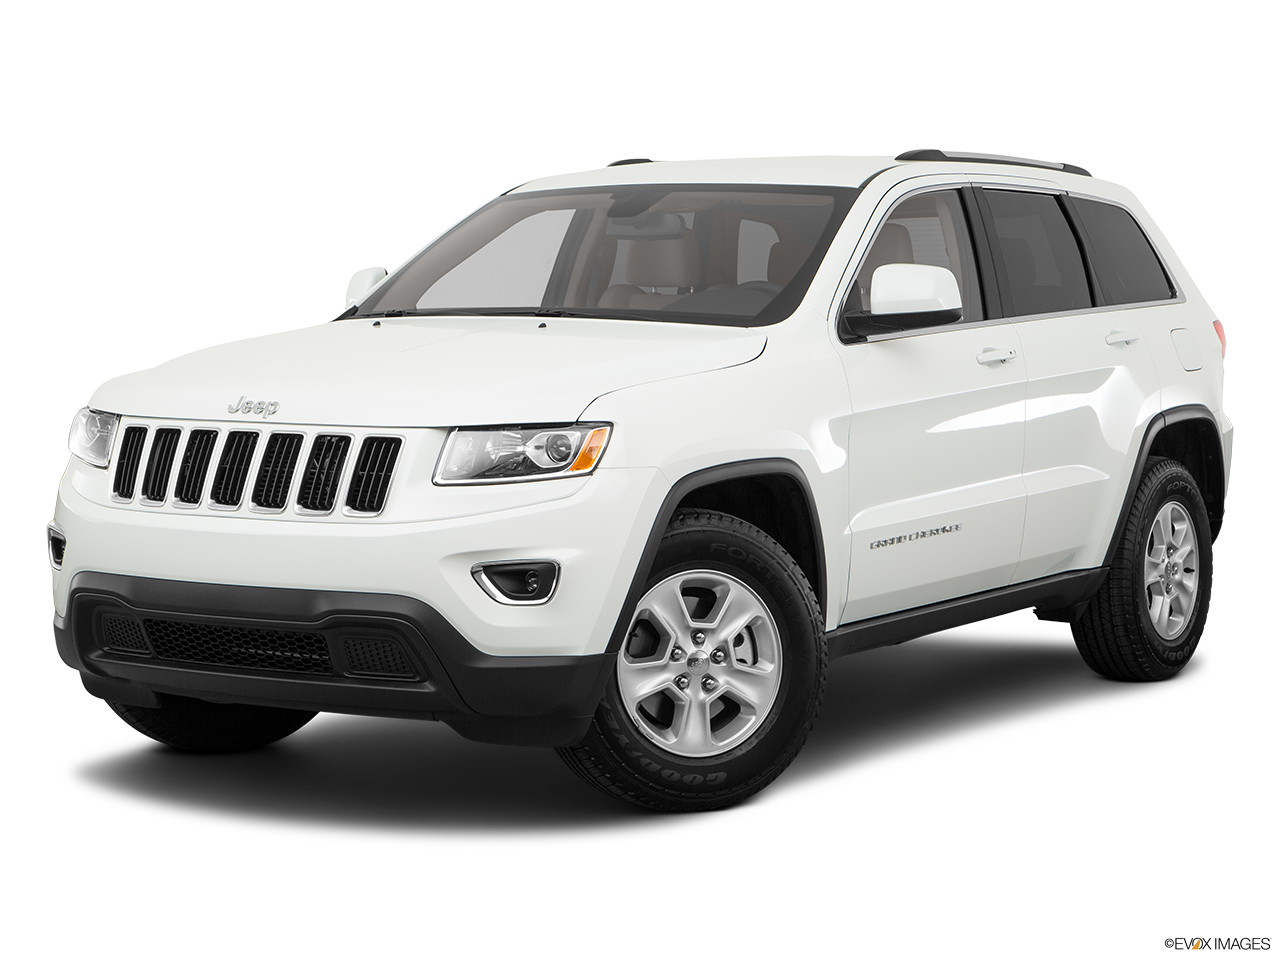 2016 jeep grand cherokee west palm beach arrigo west palm beach. Black Bedroom Furniture Sets. Home Design Ideas